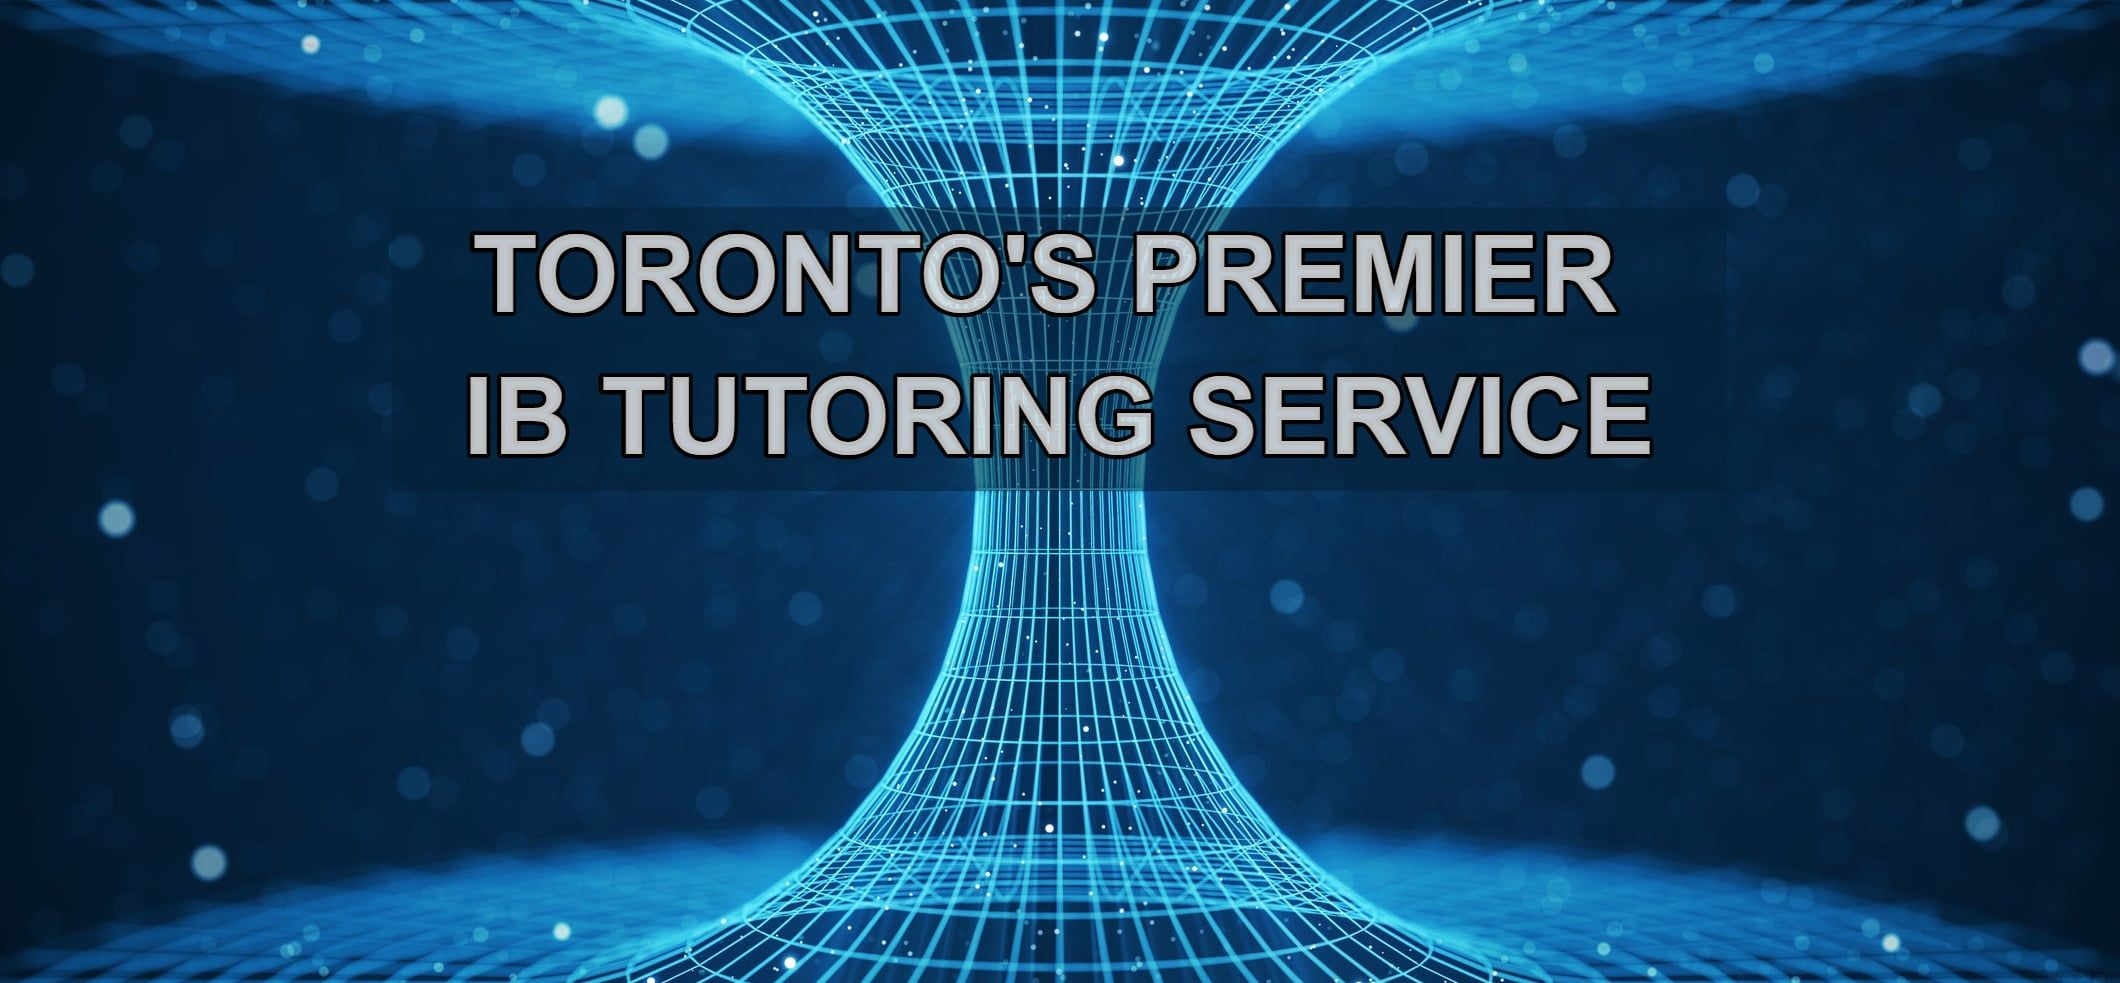 IB PHYSICS TUTORING SERVICE WITH HACK YOUR COURSE IN TORONTO